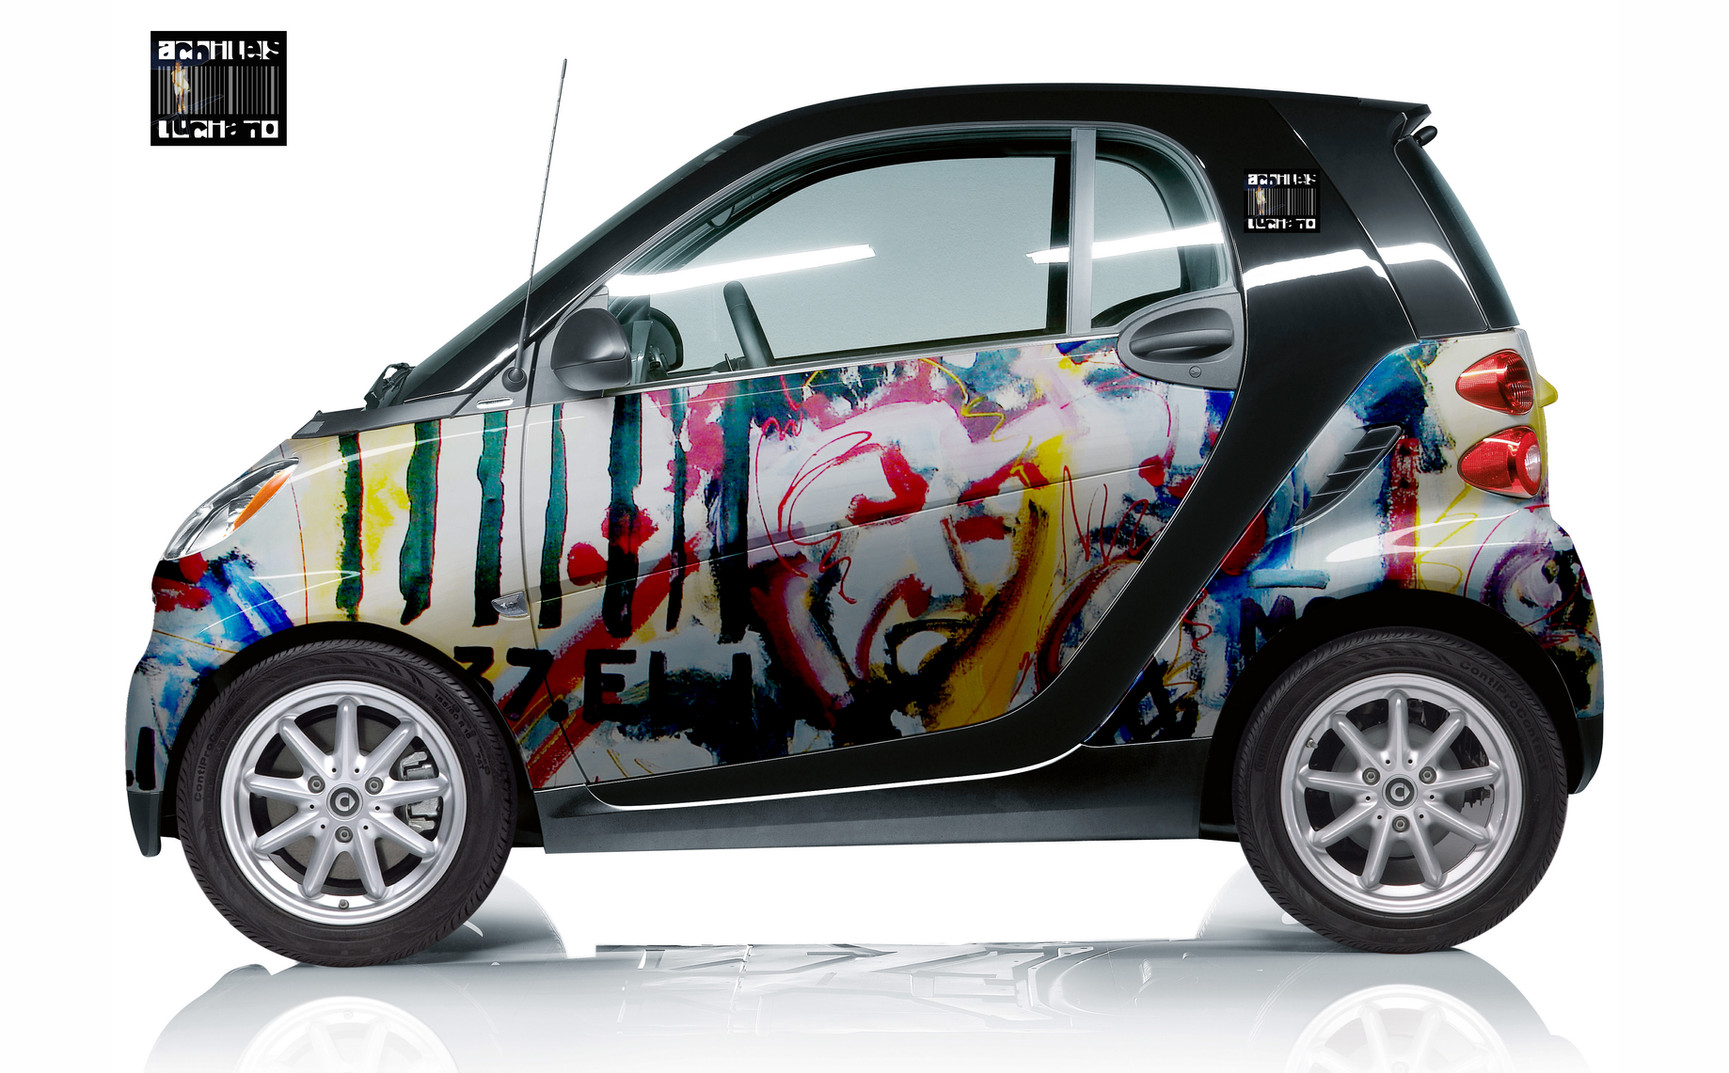 smart_fortwo by Achiles Luciano